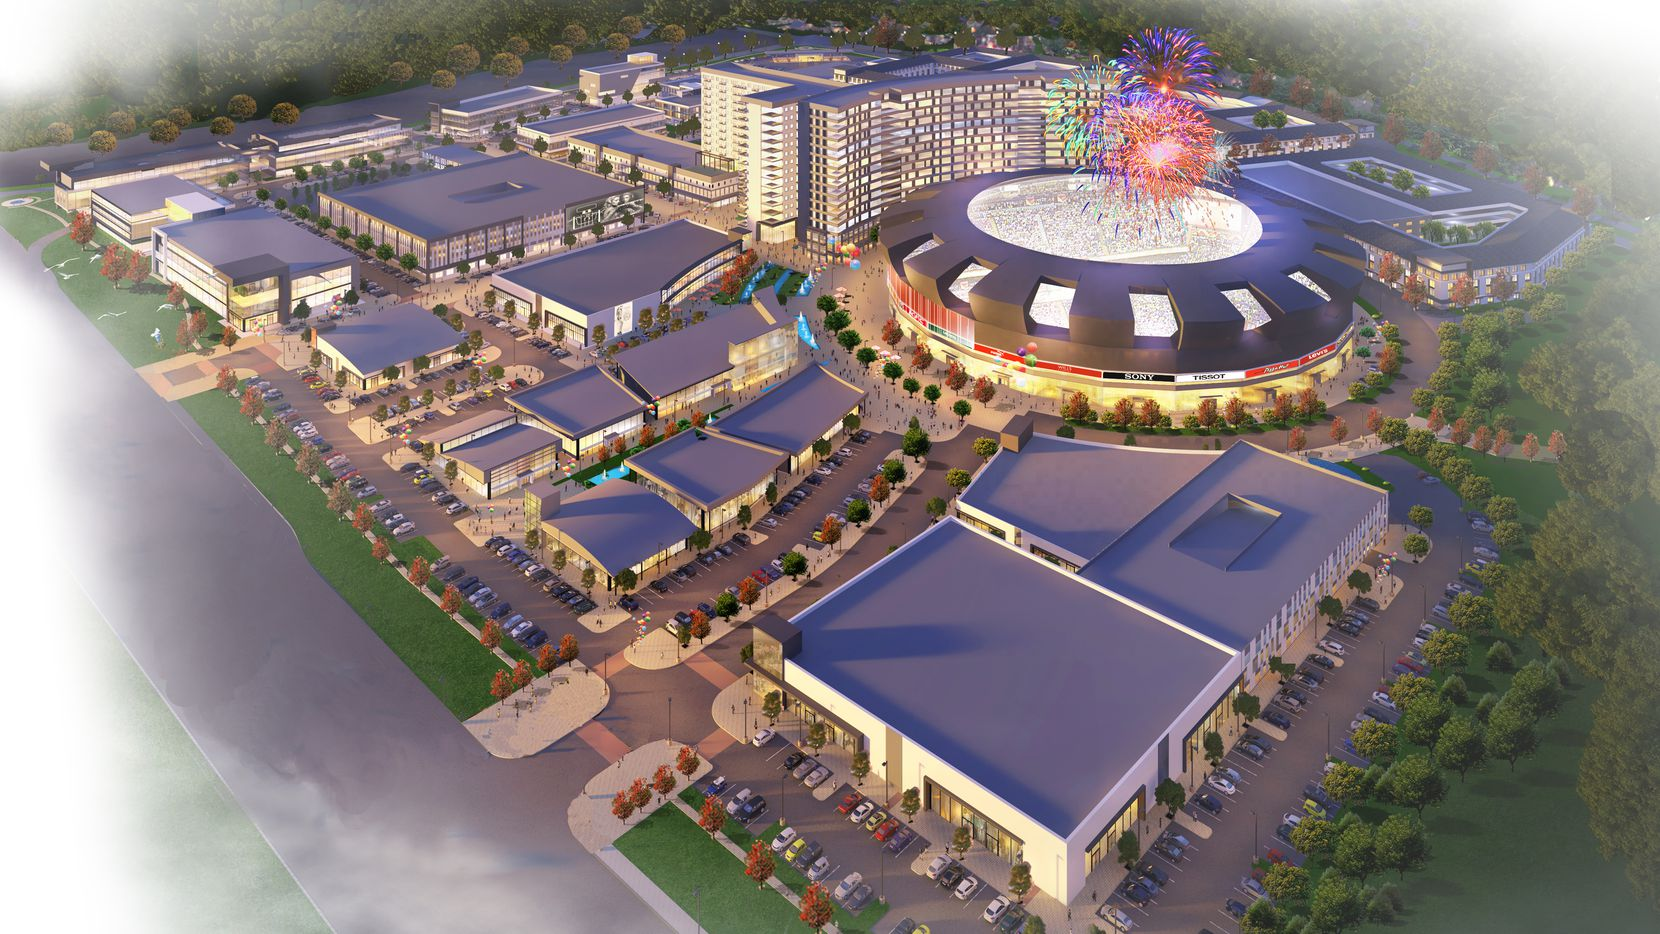 A 15,000-seat cricket stadium planned for Allen could be the first of 8 U.S. cricket venues.